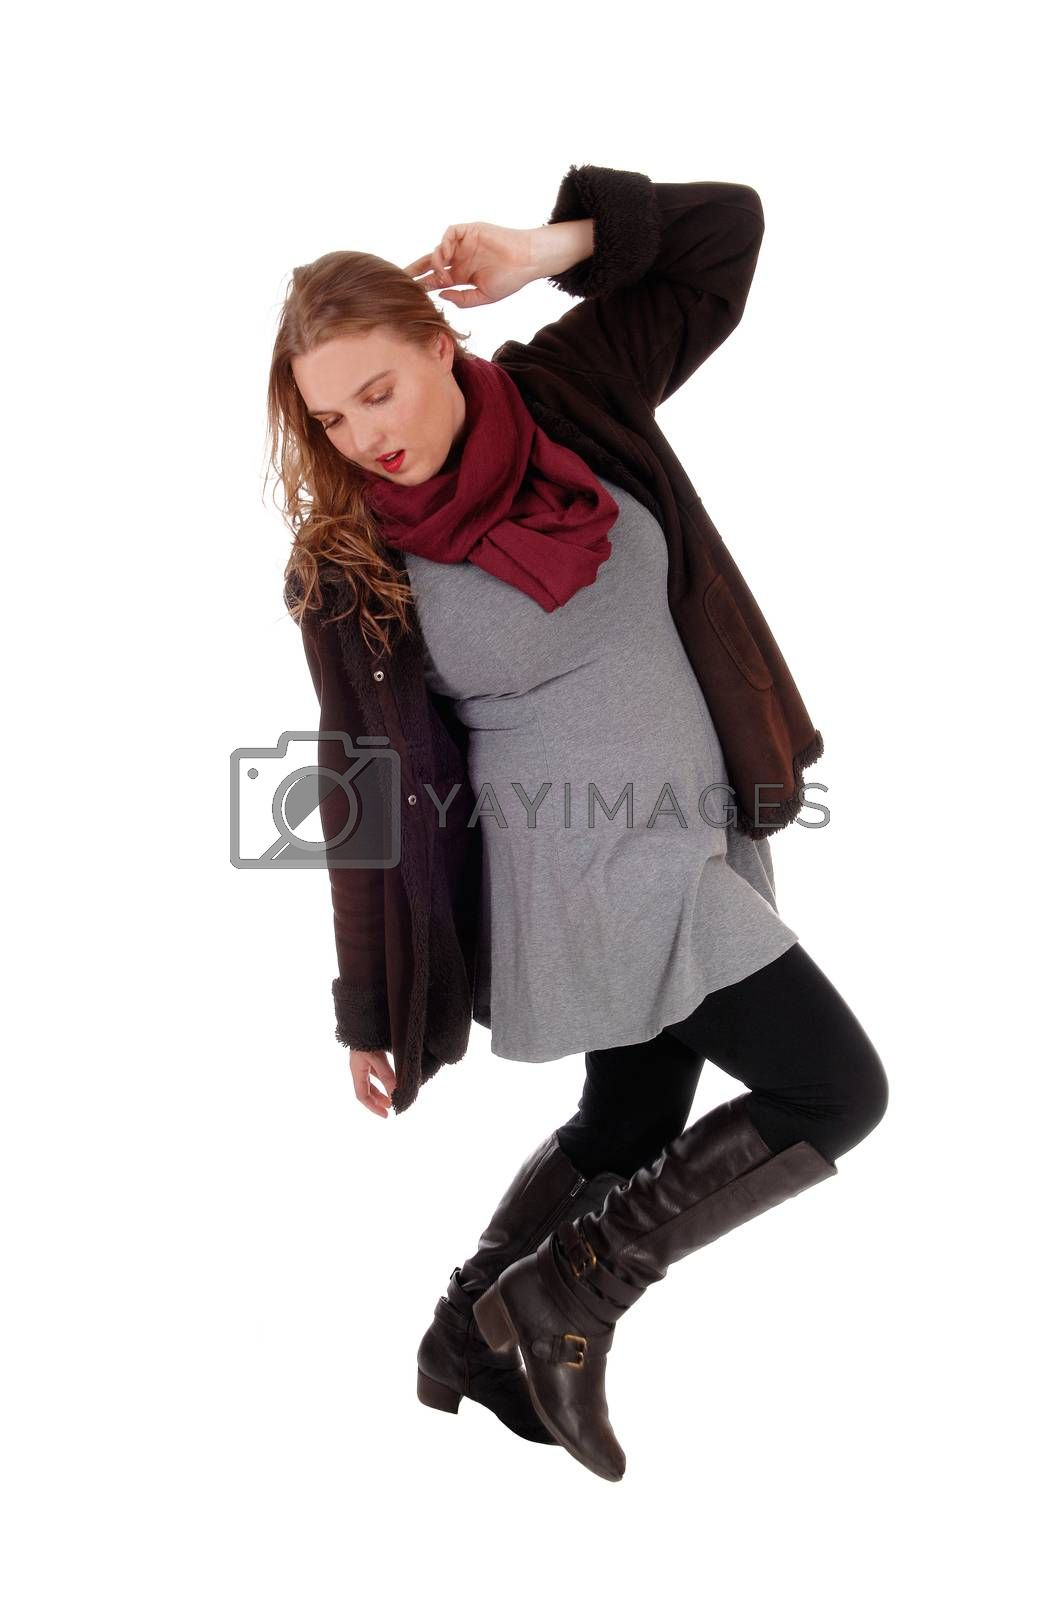 Royalty free image of Lovely woman in winter coat dancing. by feierabend